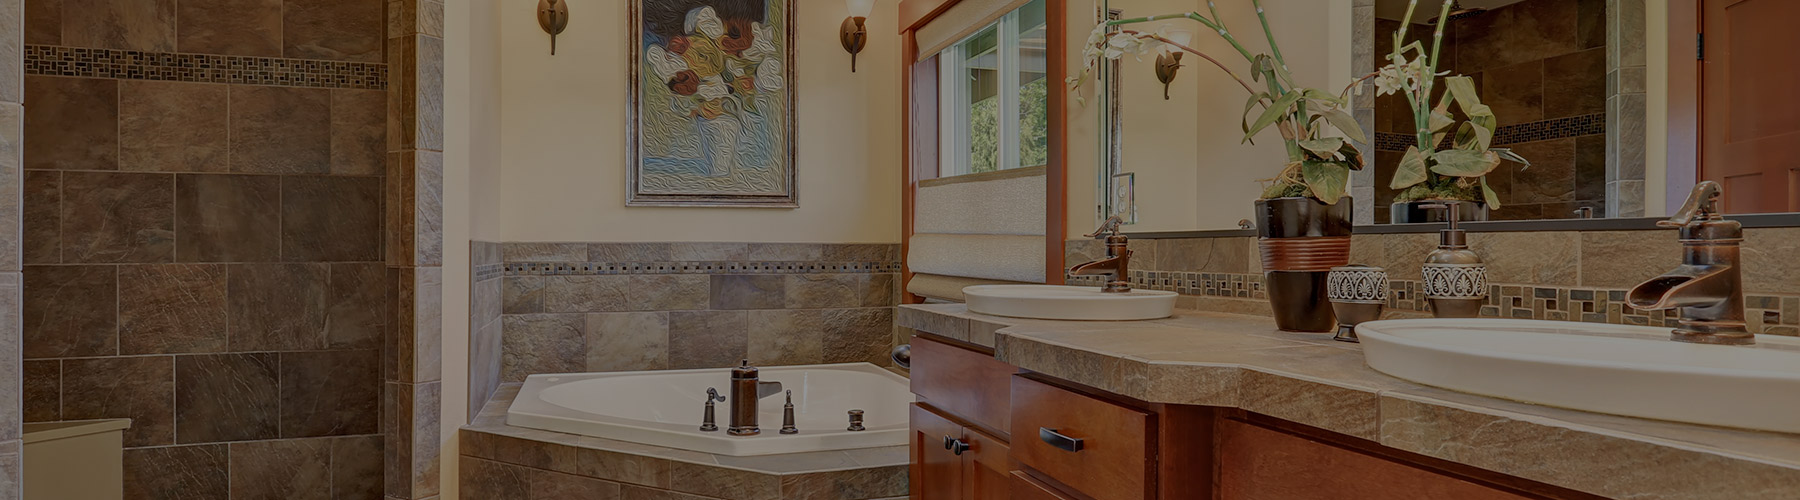 Bathroom Remodeling Services Myrtle Beach Bathroom